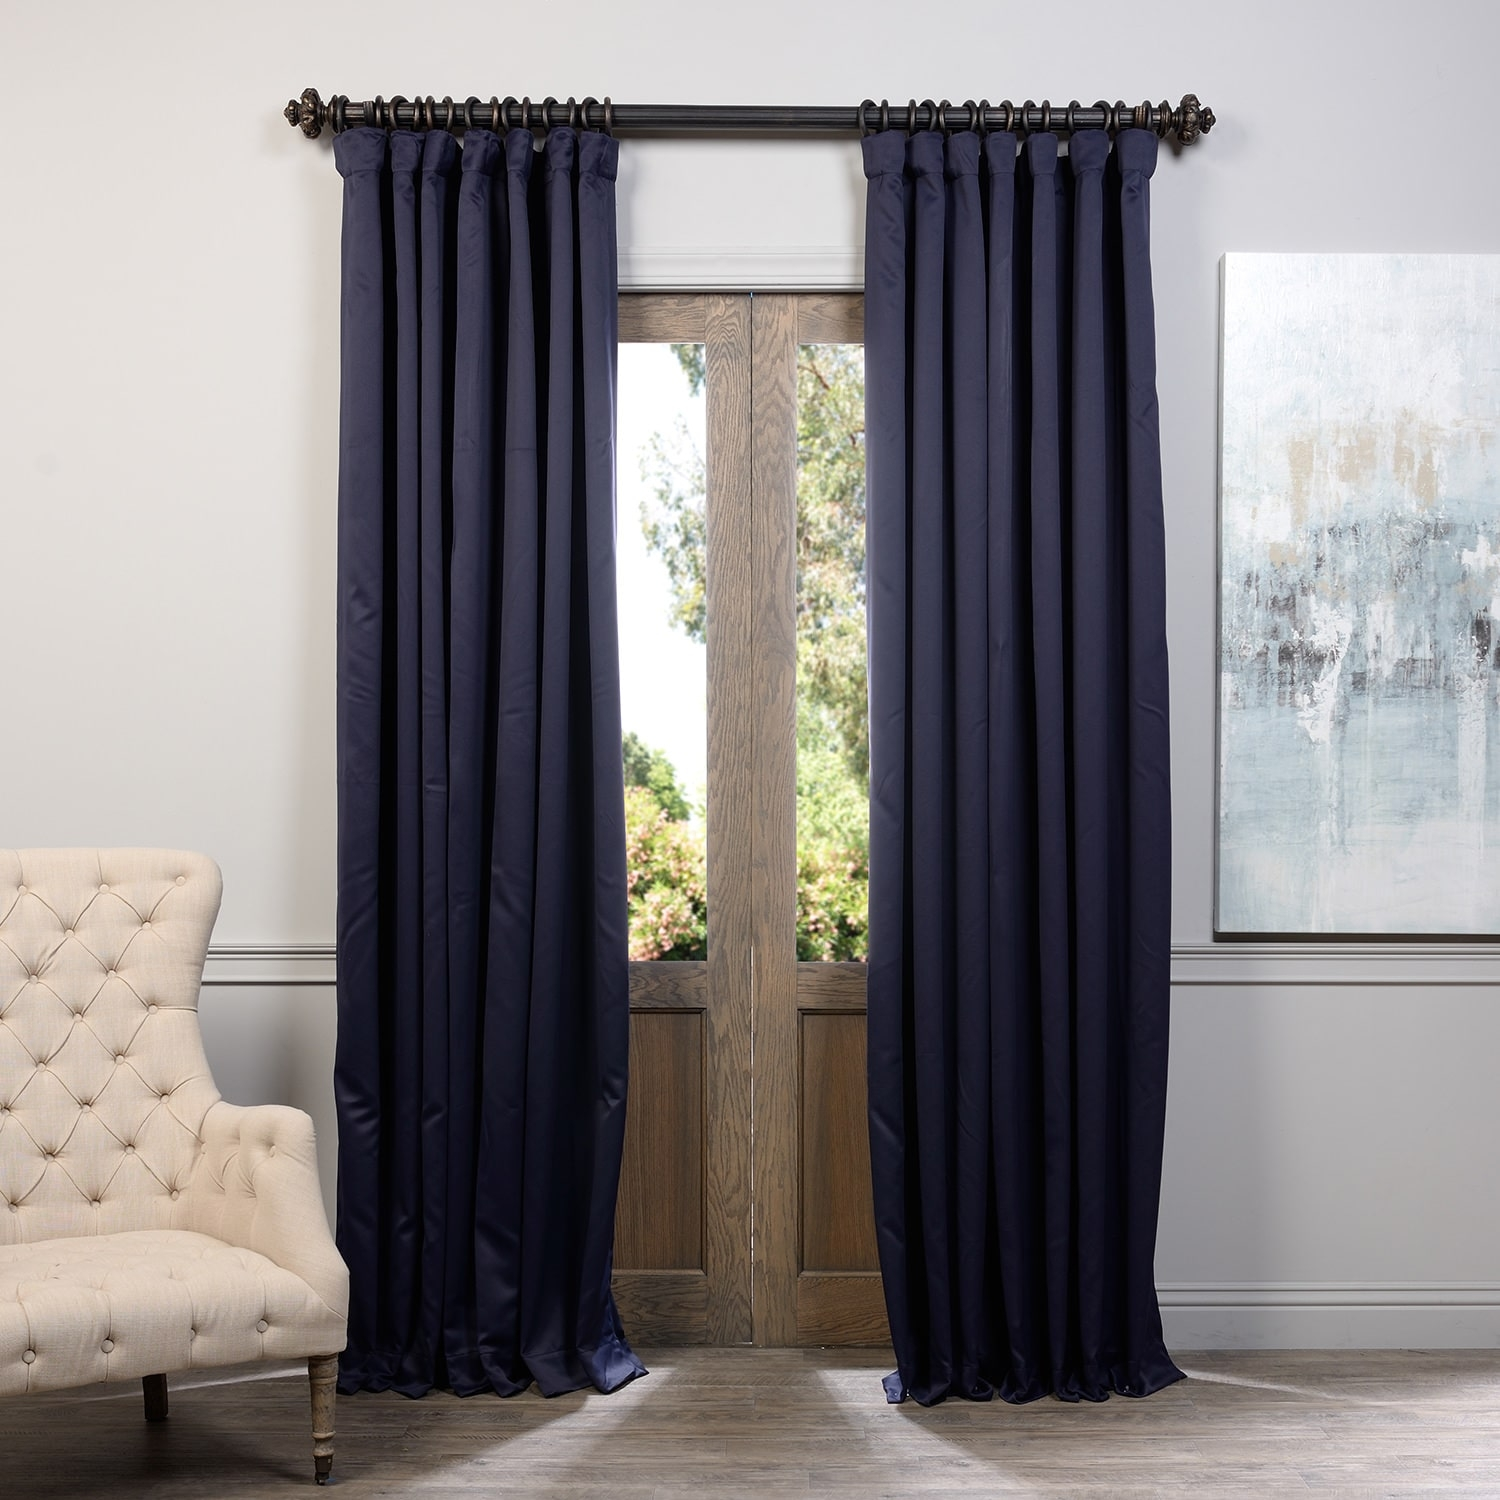 Well Suited Blackout Curtains 108 Window Treatments Blackout With Regard To 100 Inch Drop Curtains (Image 15 of 15)